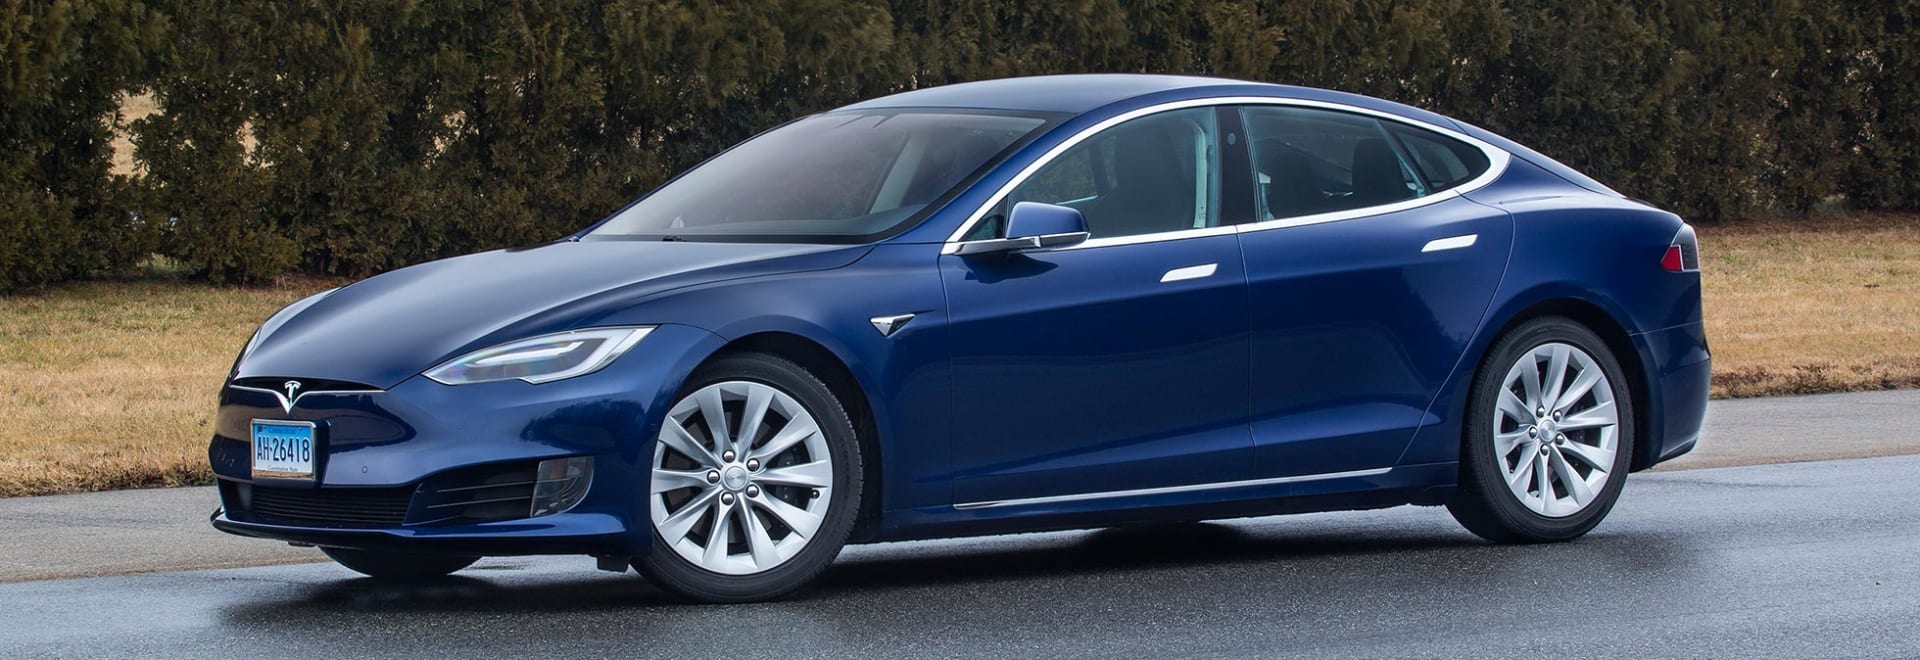 UPDATED: Consumer Reports Restores Some Points To Tesla Ratings After Return Of Automatic Braking